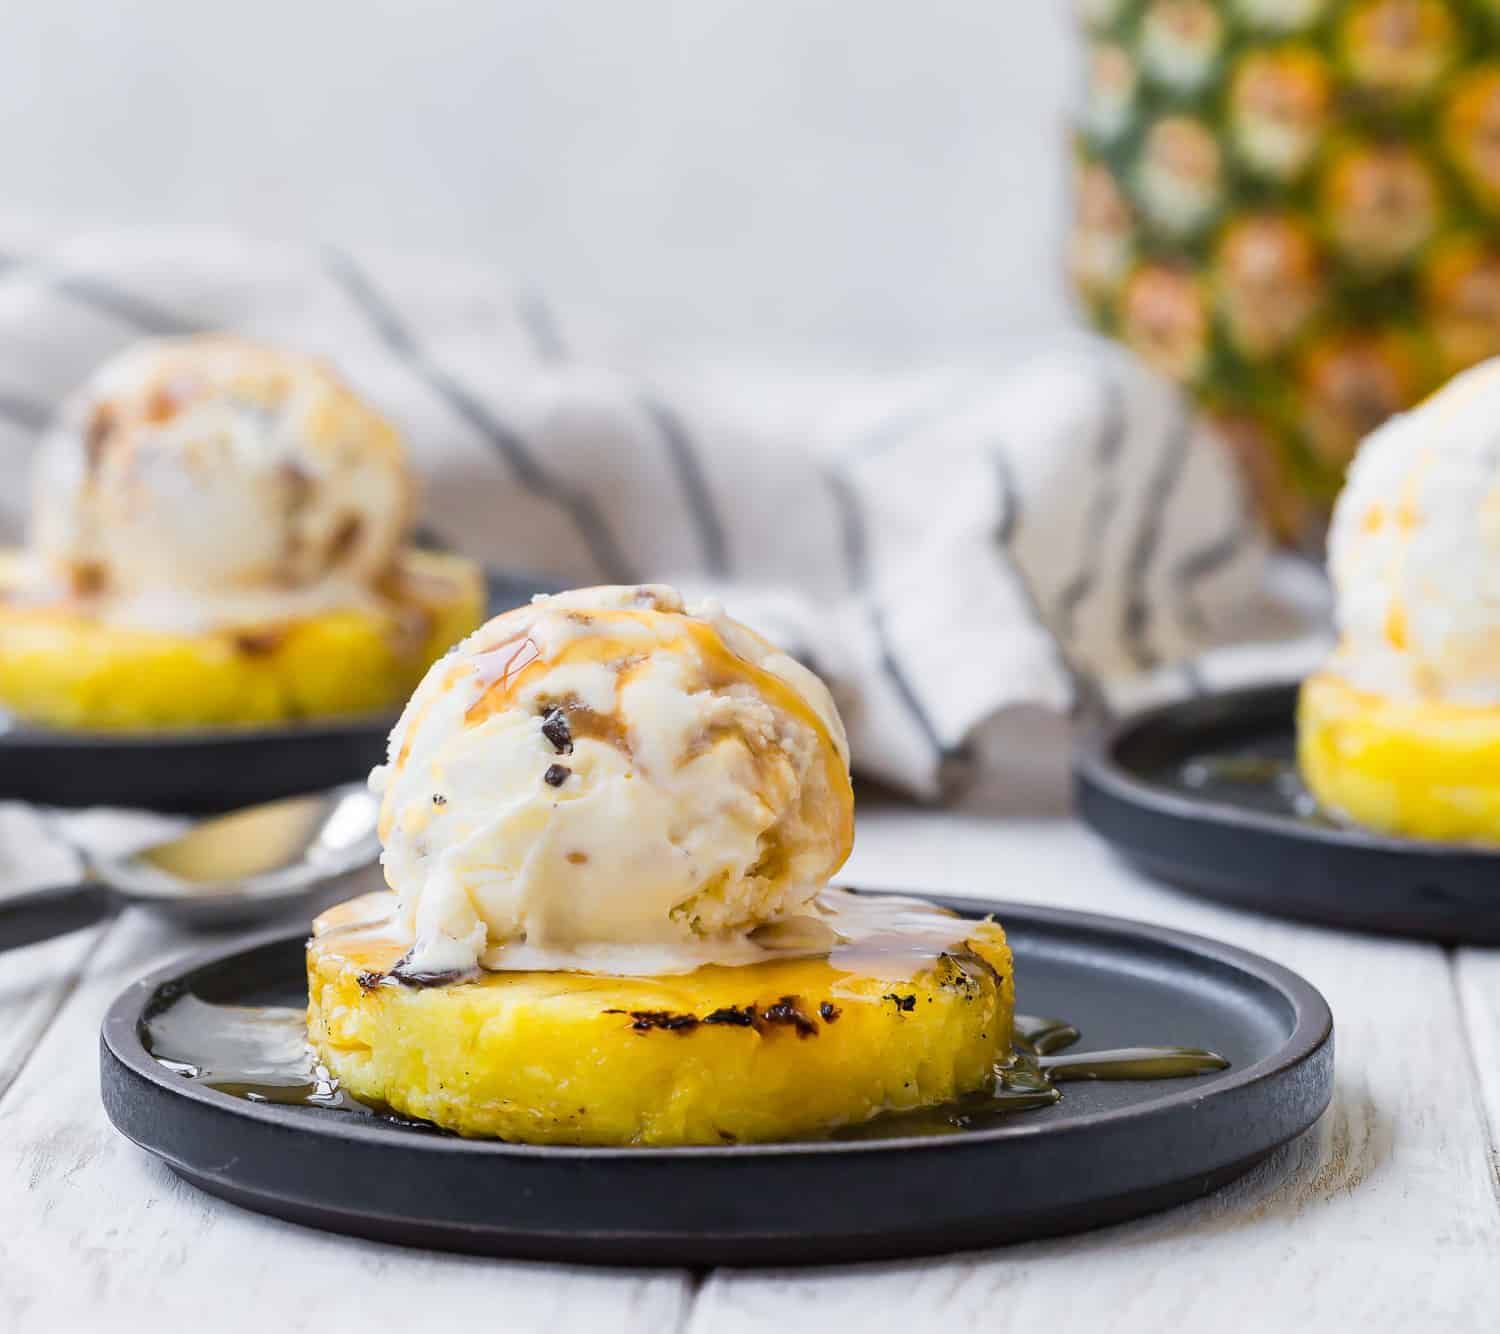 Grilled pineapple slice topped with ice cream. Additional servings in background.